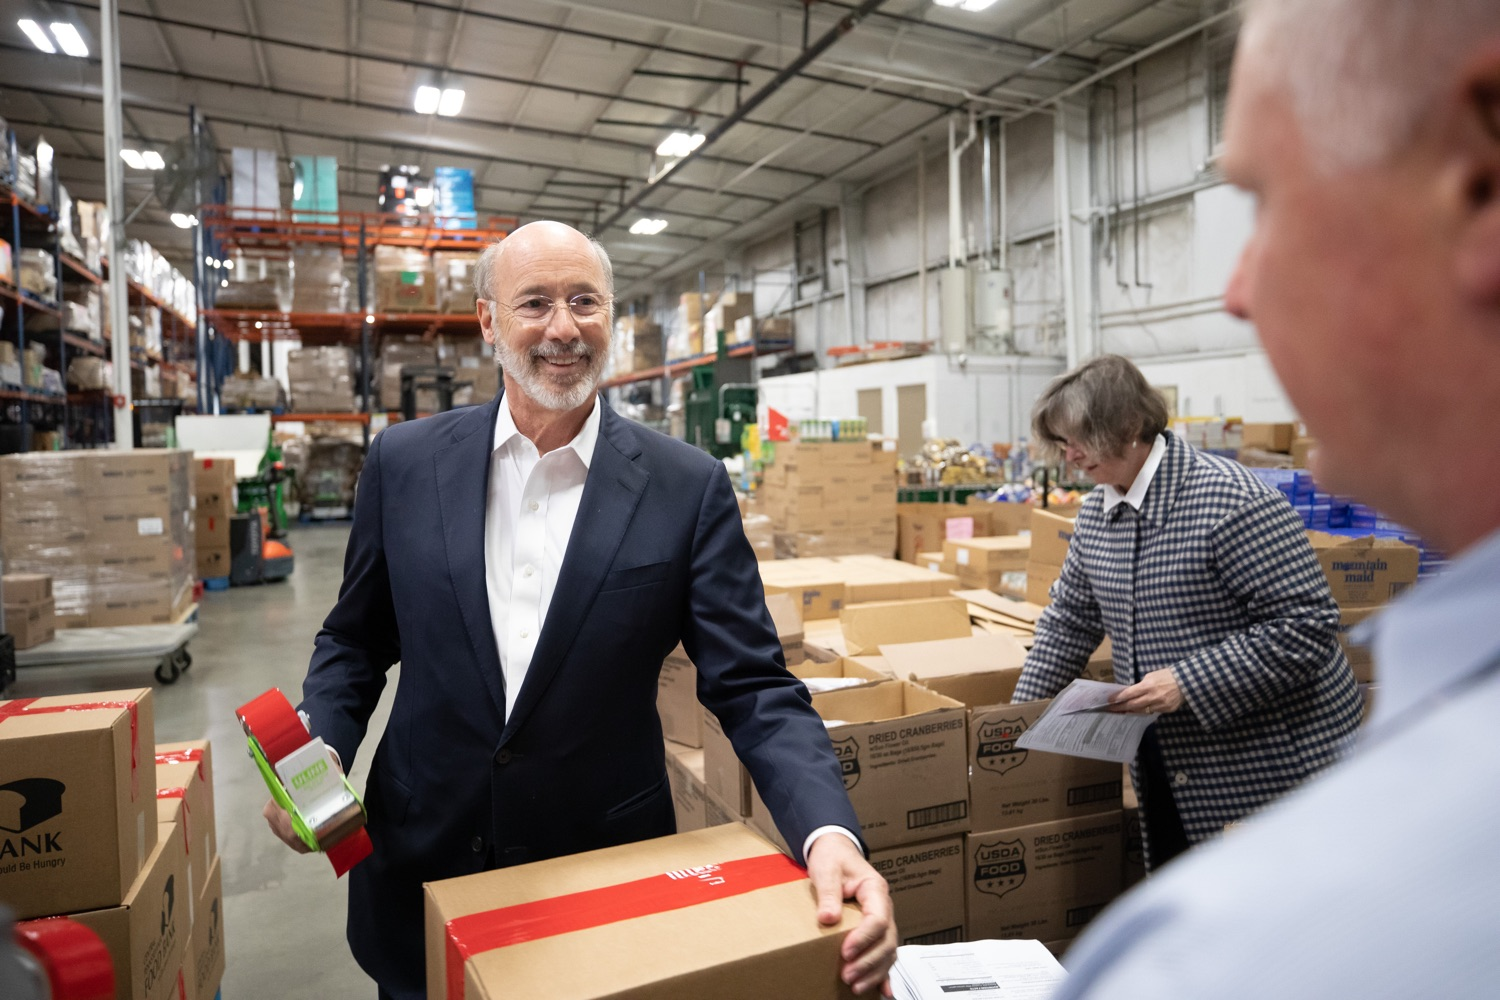 "<a href=""http://filesource.abacast.com/commonwealthofpa/photo/17632_gov_foodbank_volunteering_dz_016.jpg"" target=""_blank"">⇣ Download Photo<br></a>Governor Tom Wolf loading boxes of food at the Central Pennsylvania Food Bank.  The governor and first lady visit the Central Pennsylvania Food Bank in Harrisburg to participate in a volunteer project, packing boxes of food for veterans and their families. Ahead of Thanksgiving and the holiday season, Governor Tom Wolf and First Lady Frances Wolf are reminding Pennsylvanians of the importance of helping each other. Harrisburg, PA  Tuesday November 26, 2019"